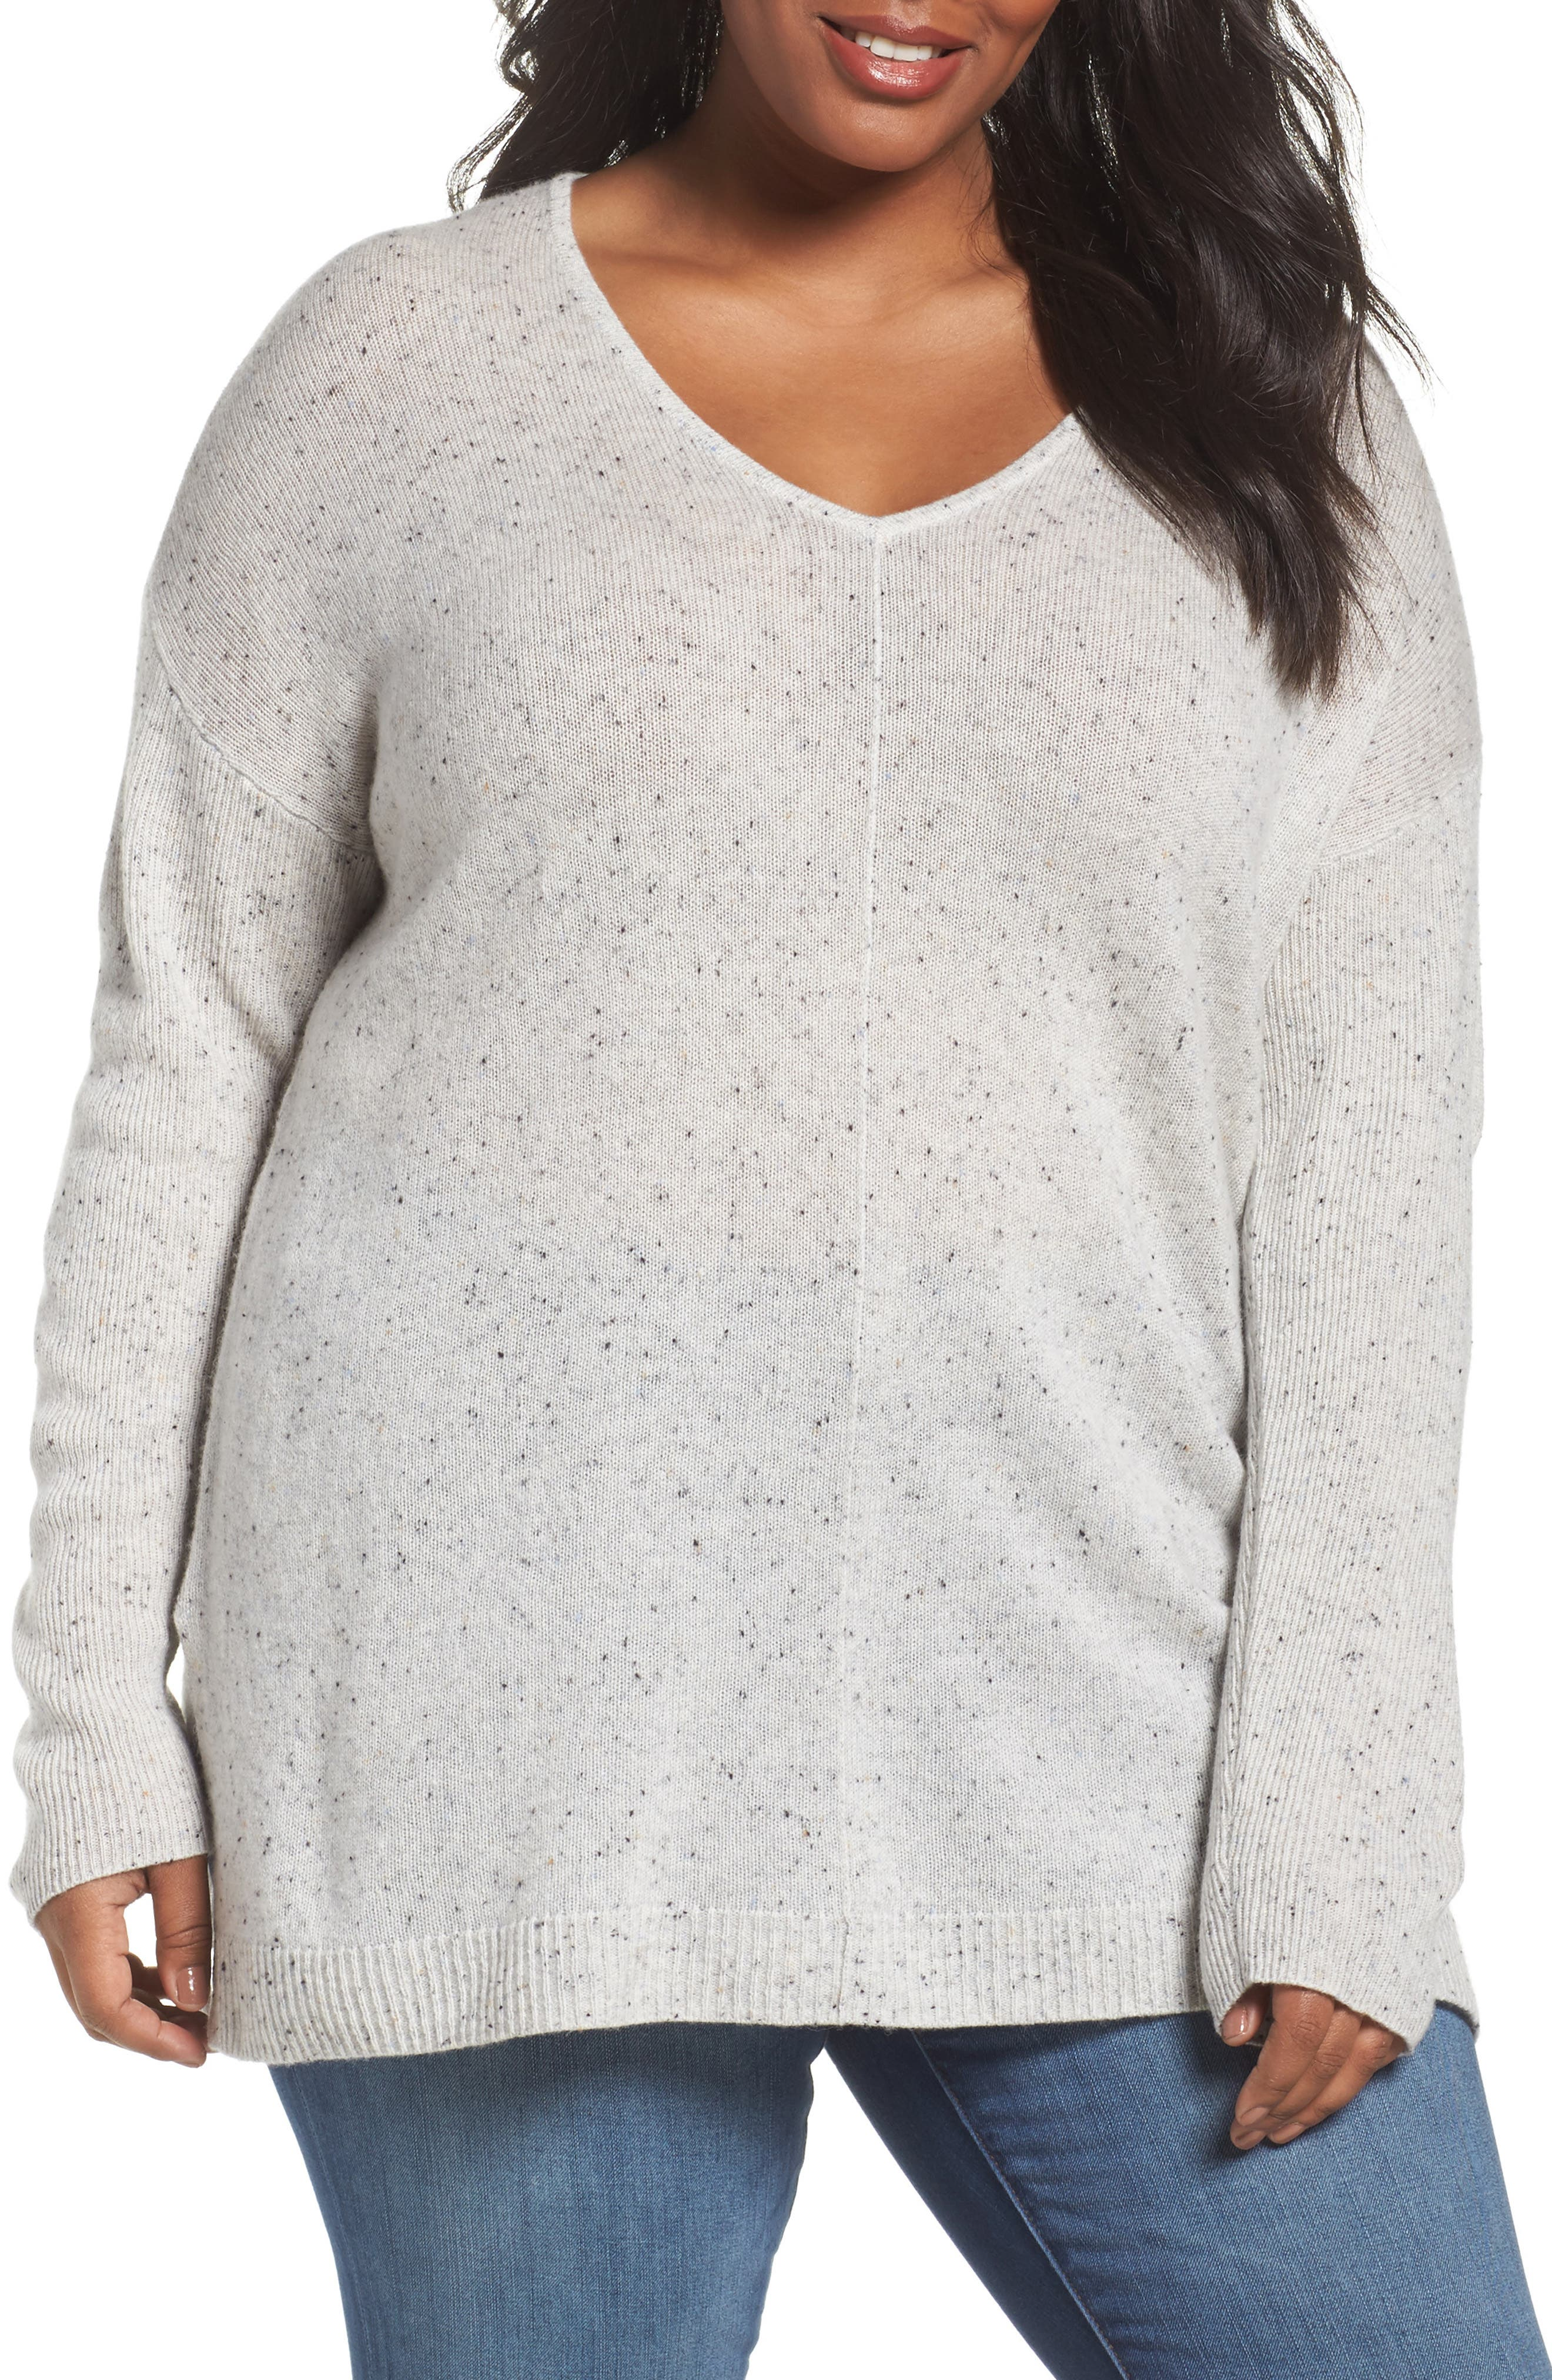 Easy V-Neck Wool & Cashmere Pullover,                             Main thumbnail 1, color,                             Grey Light Heather